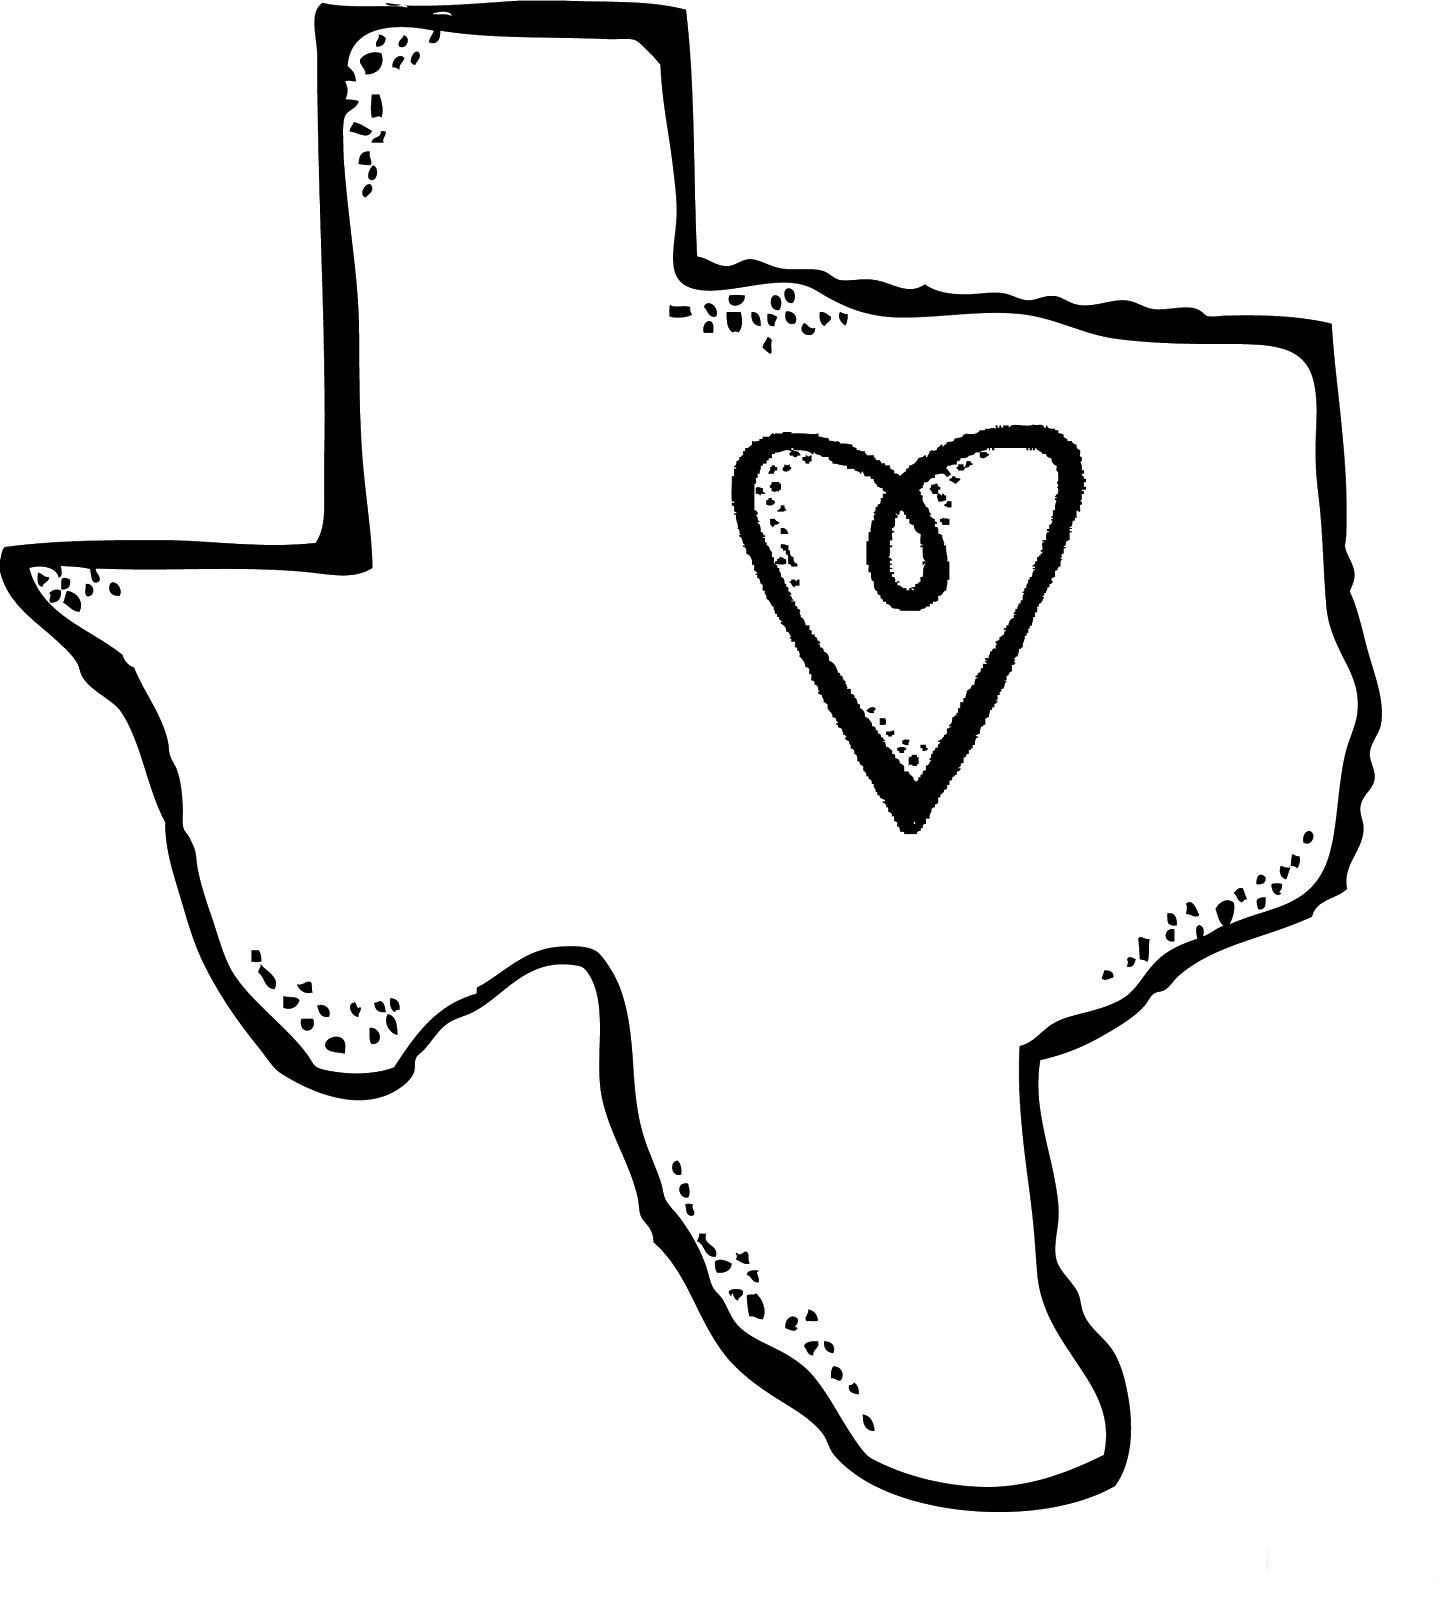 West Texas Clipart 20 Free Cliparts